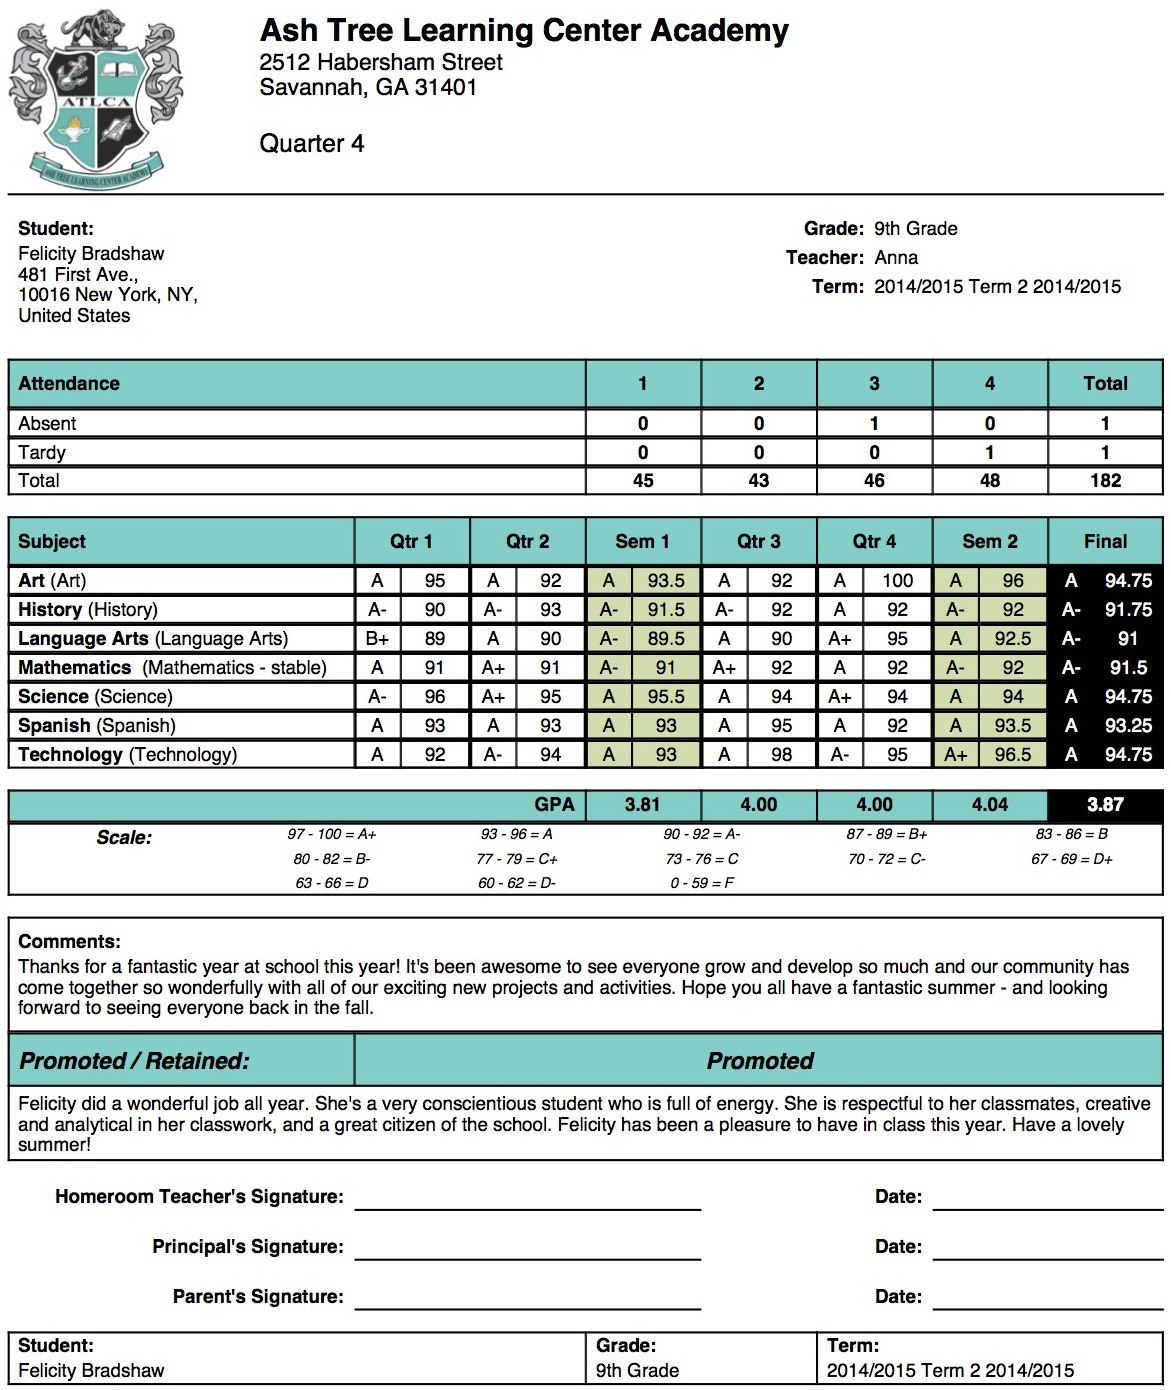 Ash Tree Learning Center Academy Report Card Template  School With Regard To High School Student Report Card Template